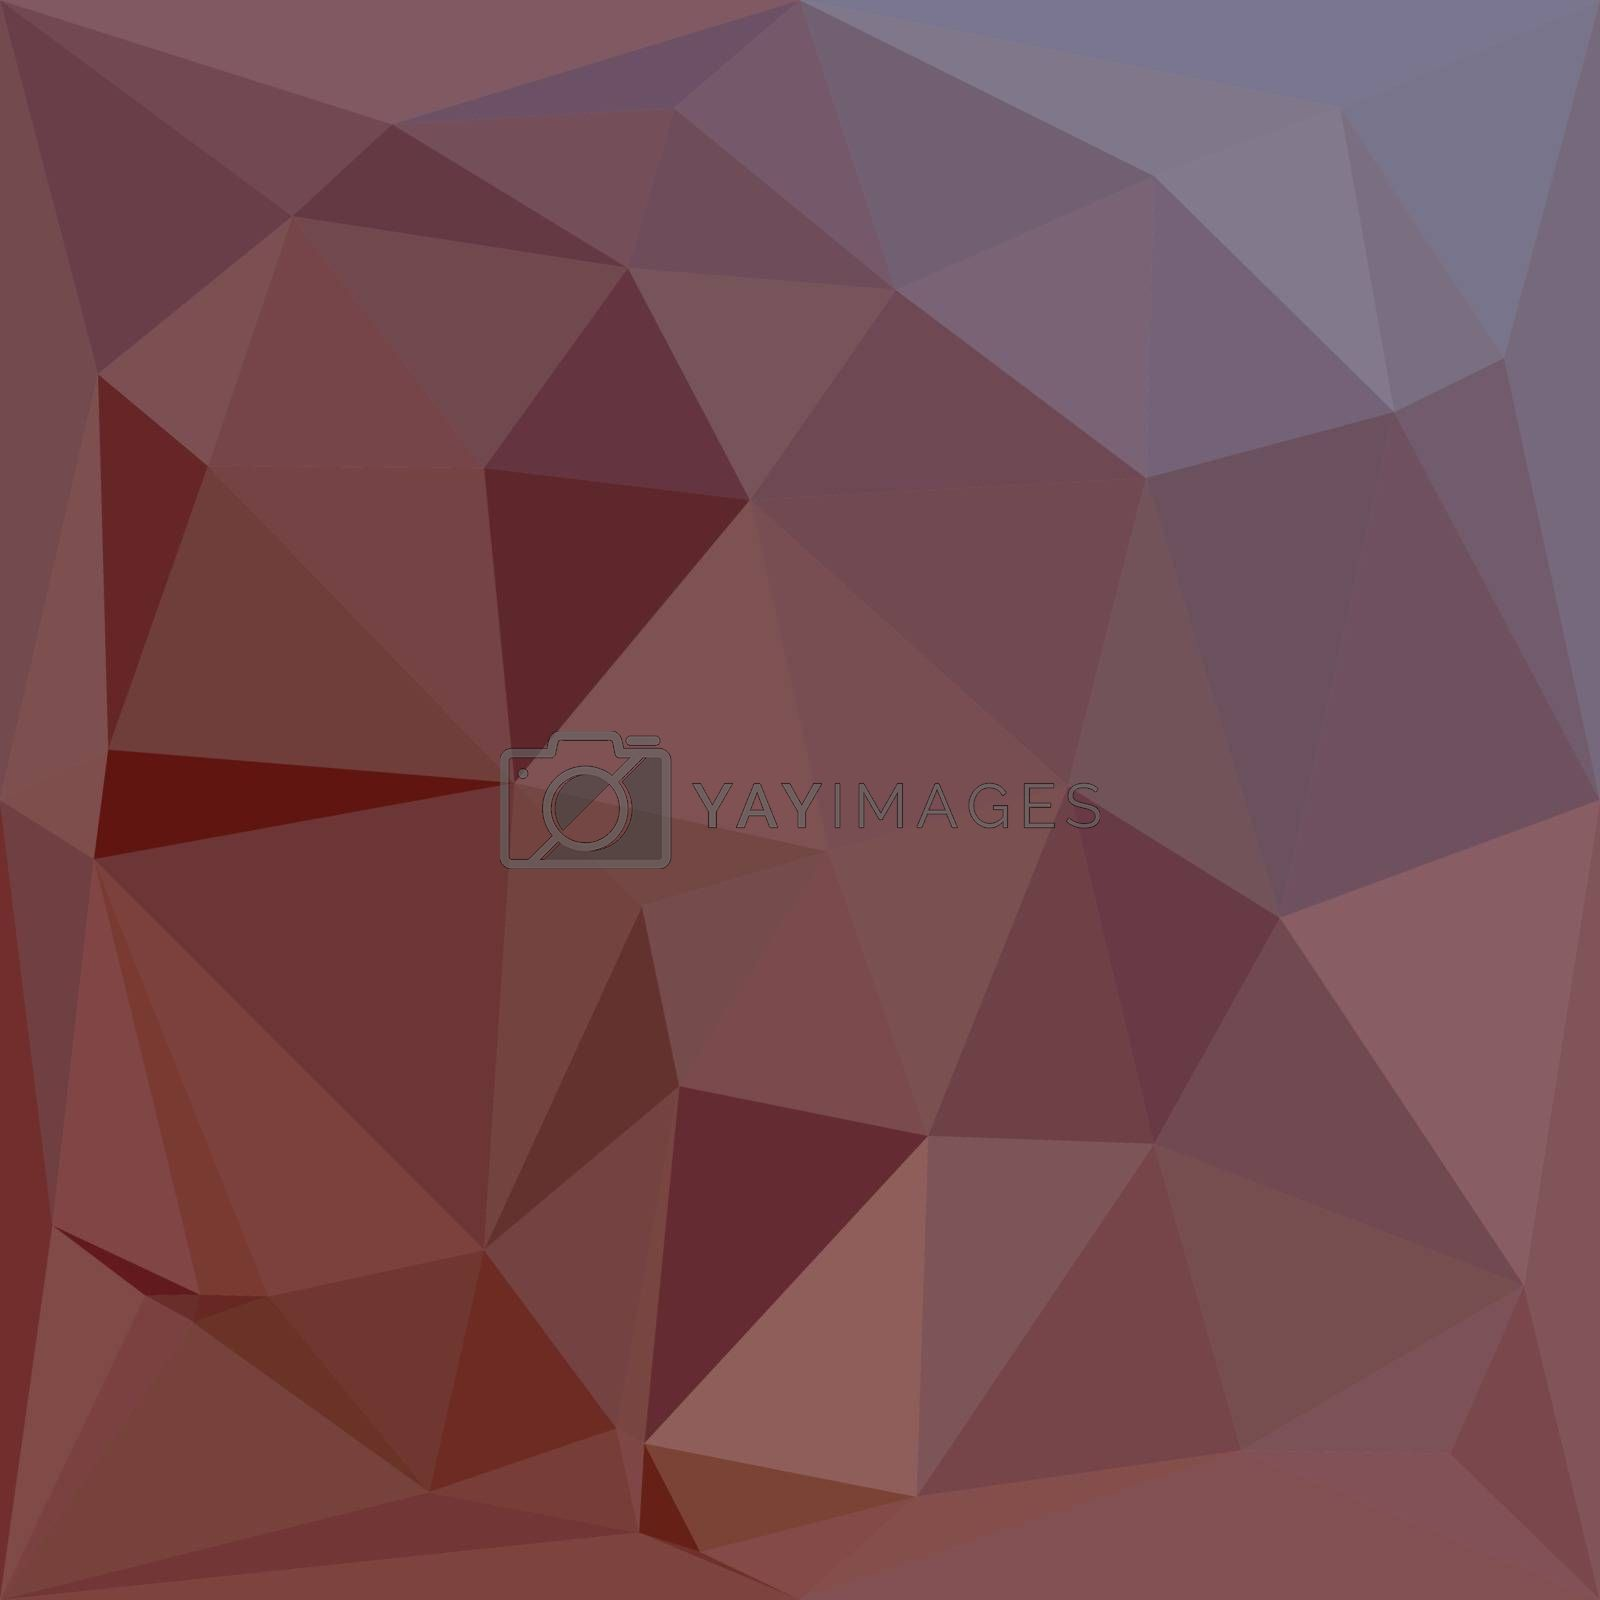 Low polygon style illustration of an indian red abstract geometric background.